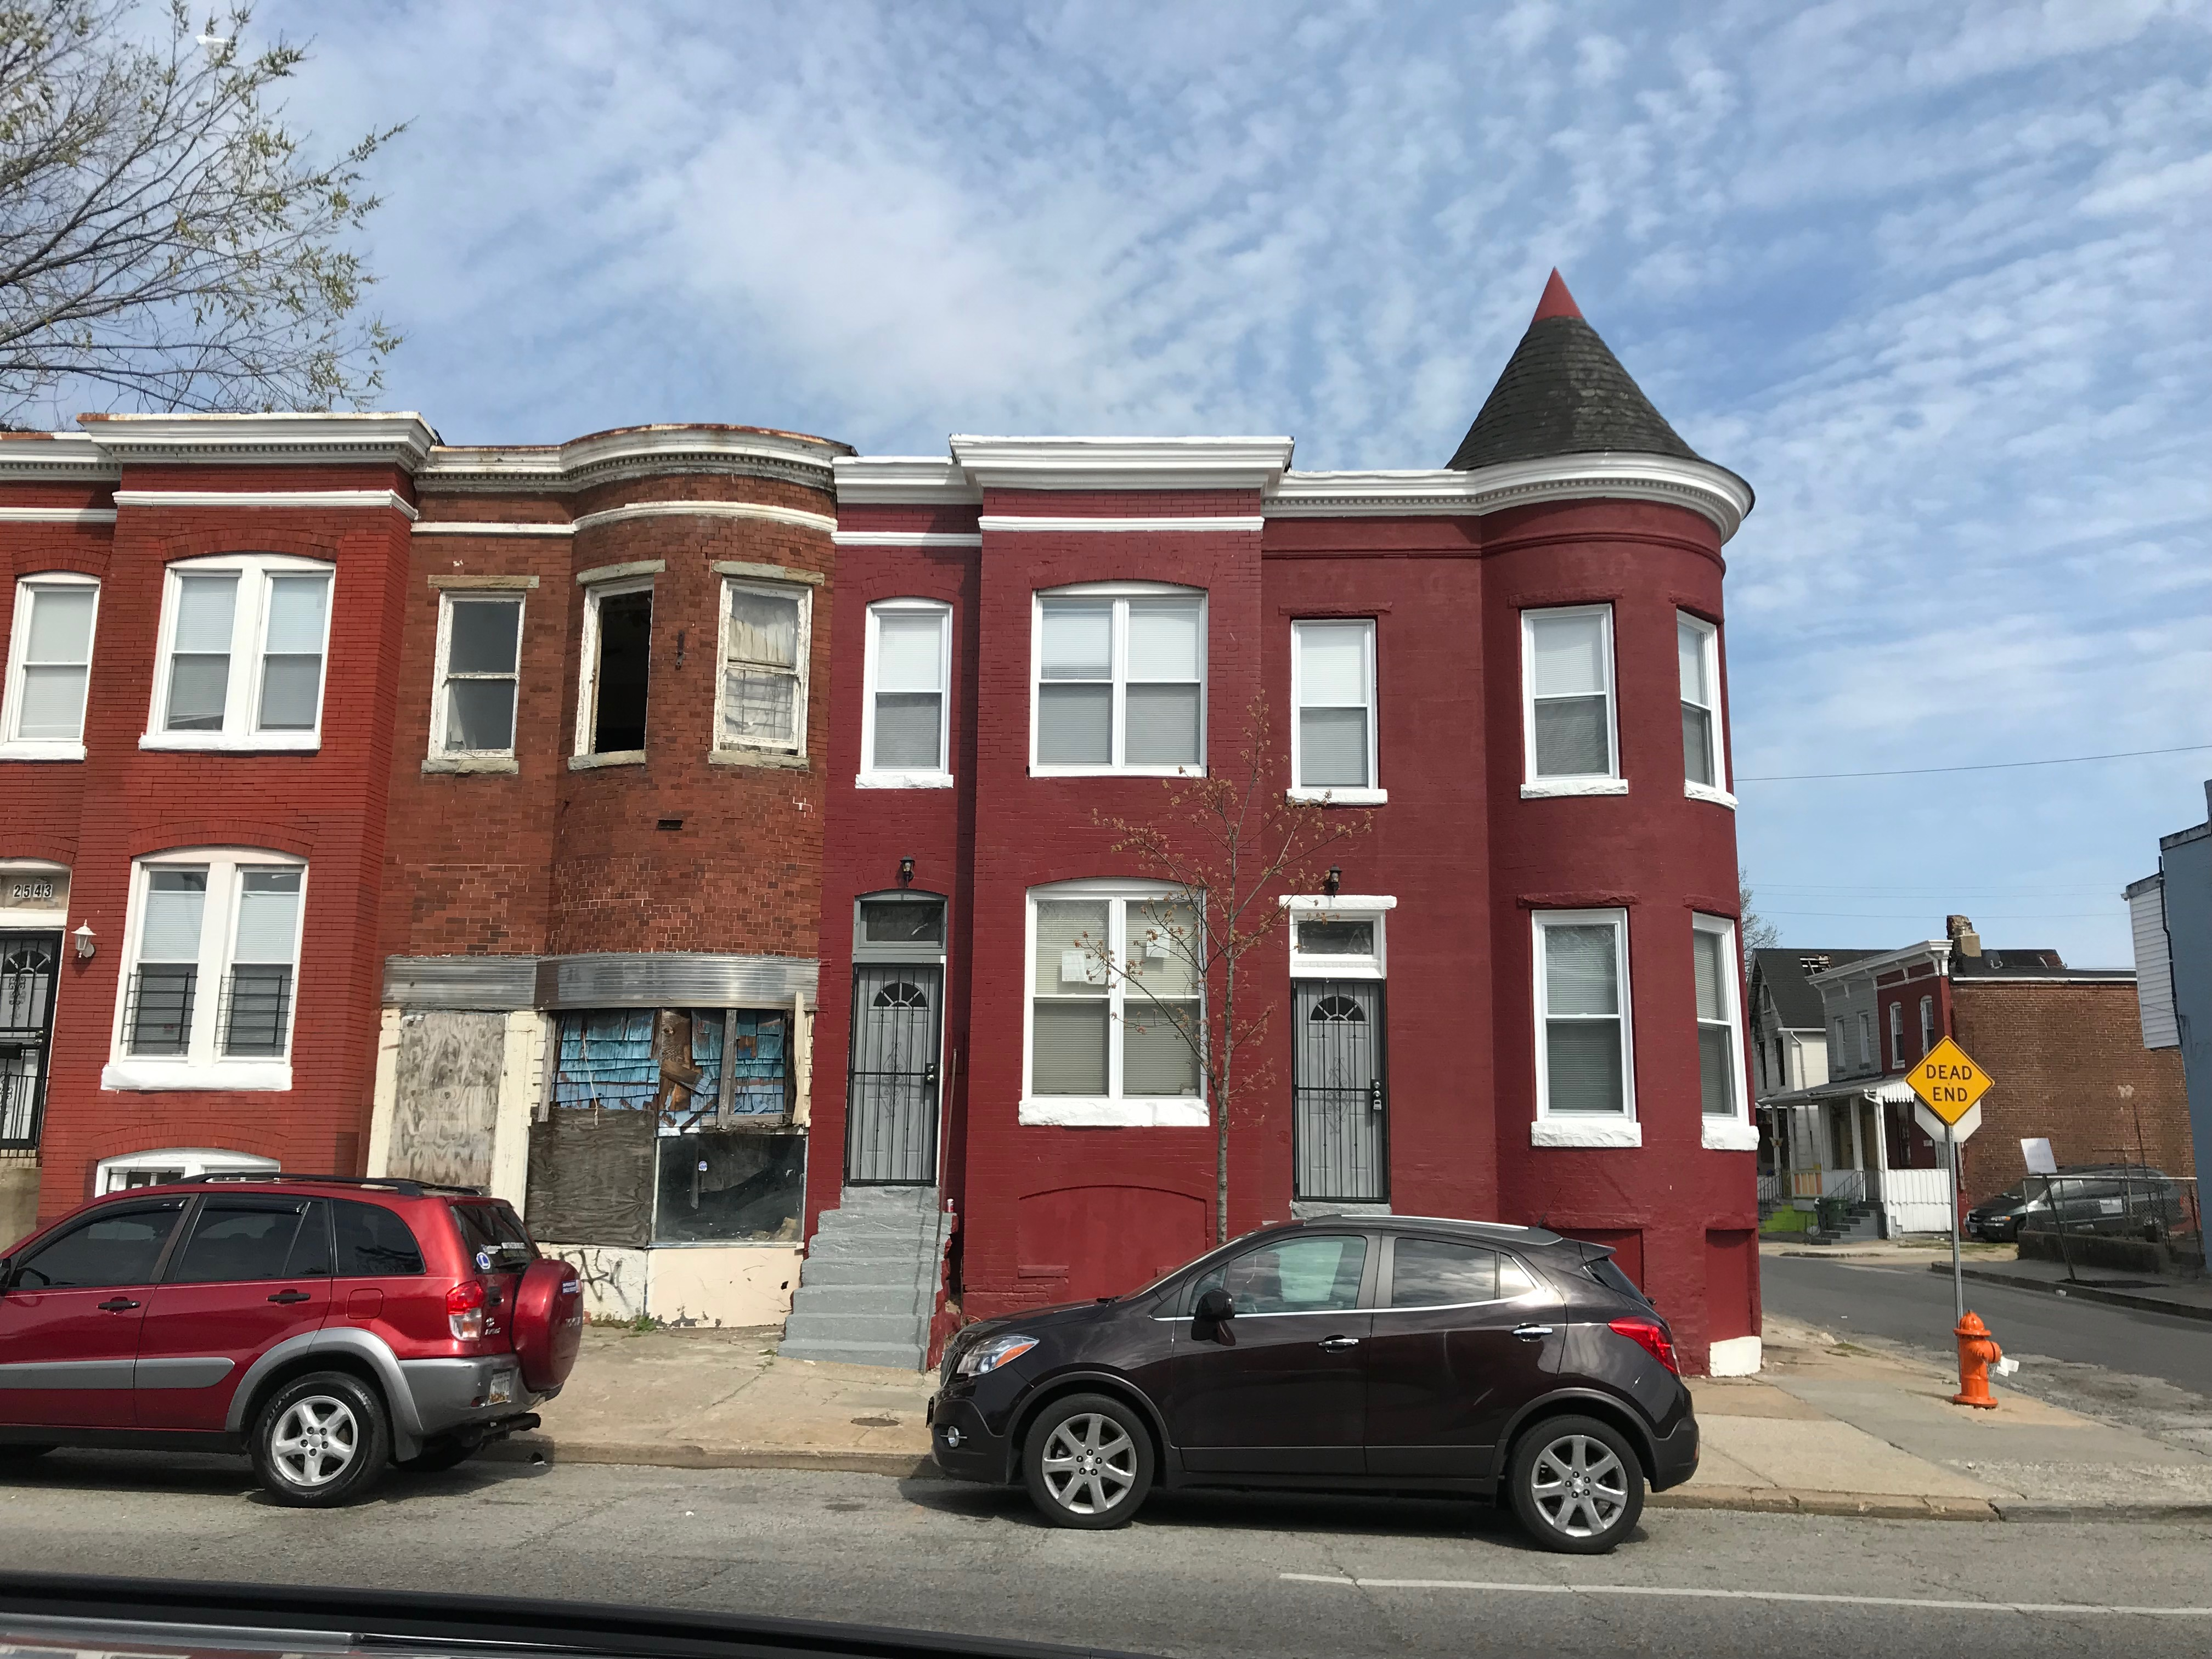 Rowhouses, 2537-2541 Greenmount Avenue, Baltimore, MD 21218, 26th Street, Baltimore, Building, Car, HQ Photo